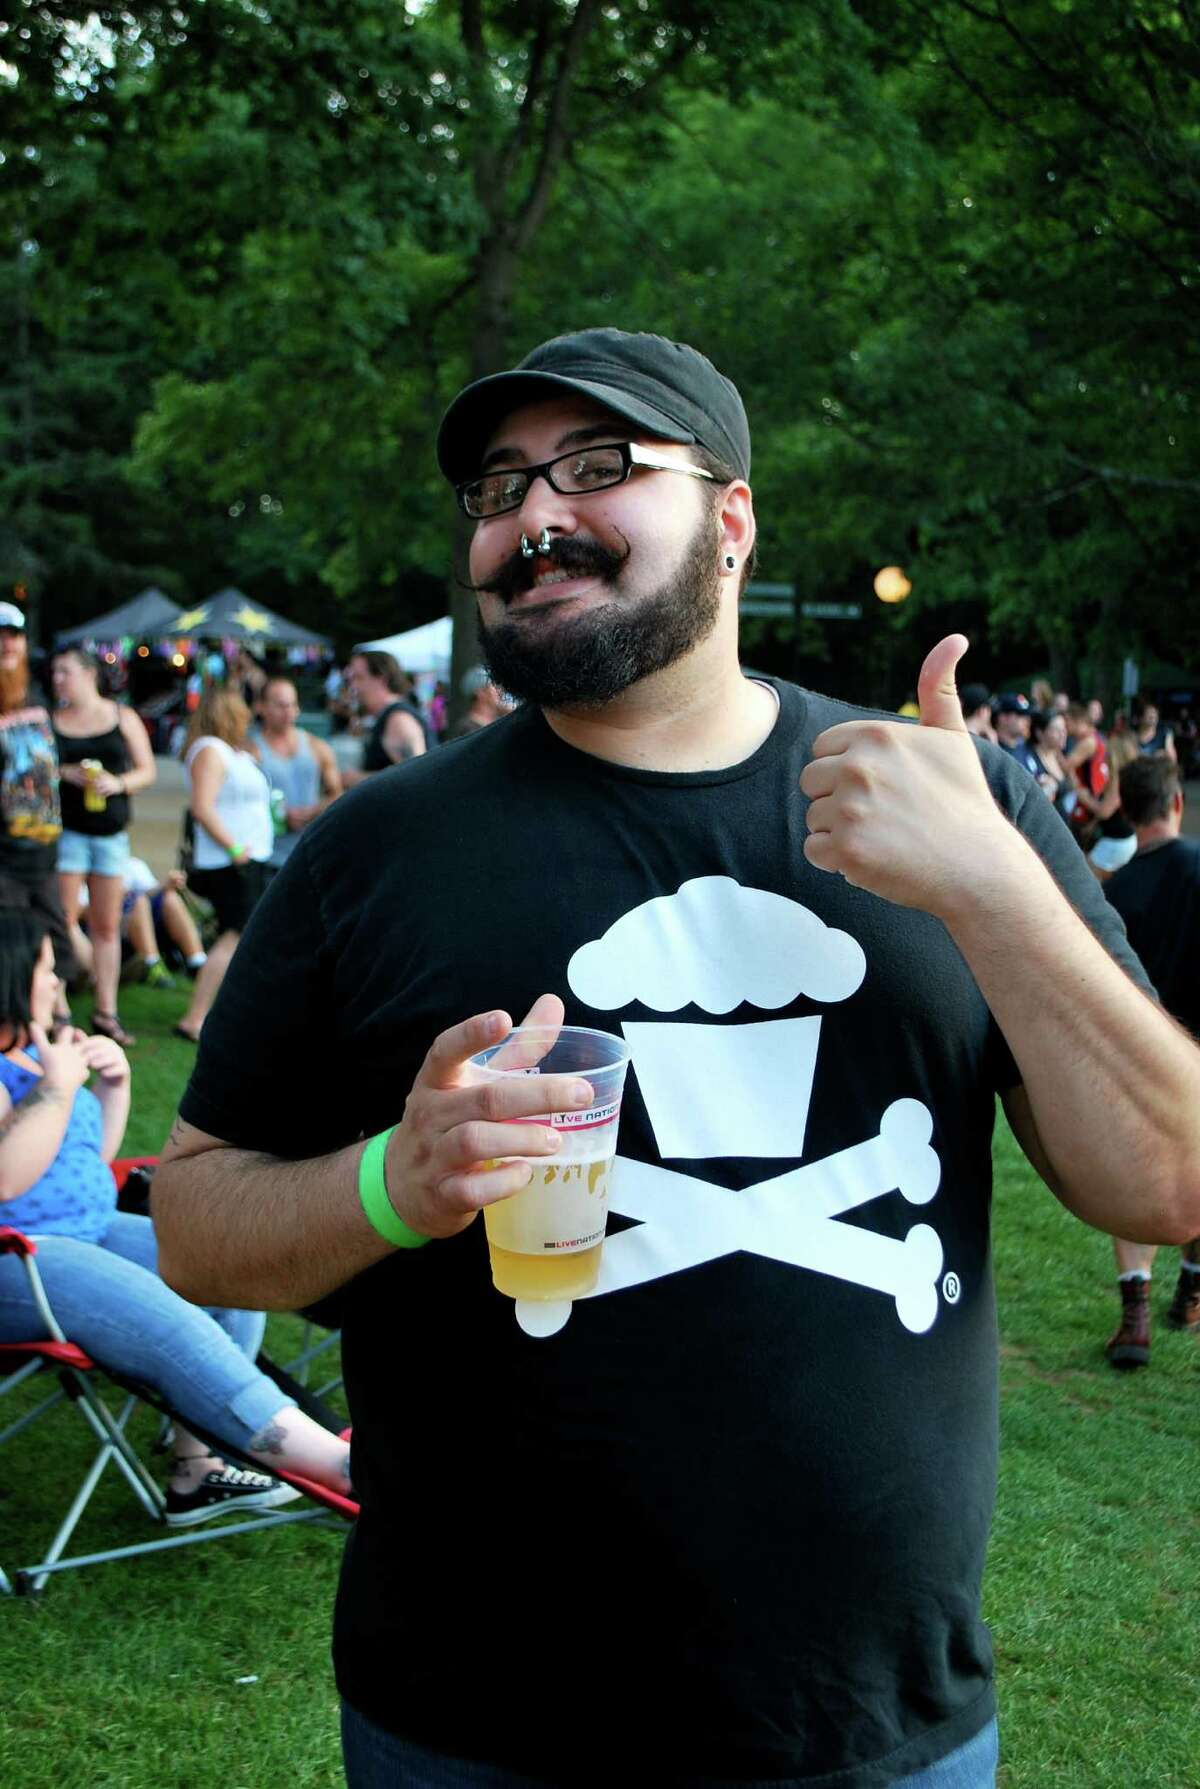 Were you Seen at the Mayhem Fest with Motorhead, Anthrax, Slipknot and other metal bands at SPAC on Tuesday, July 31, 2012?